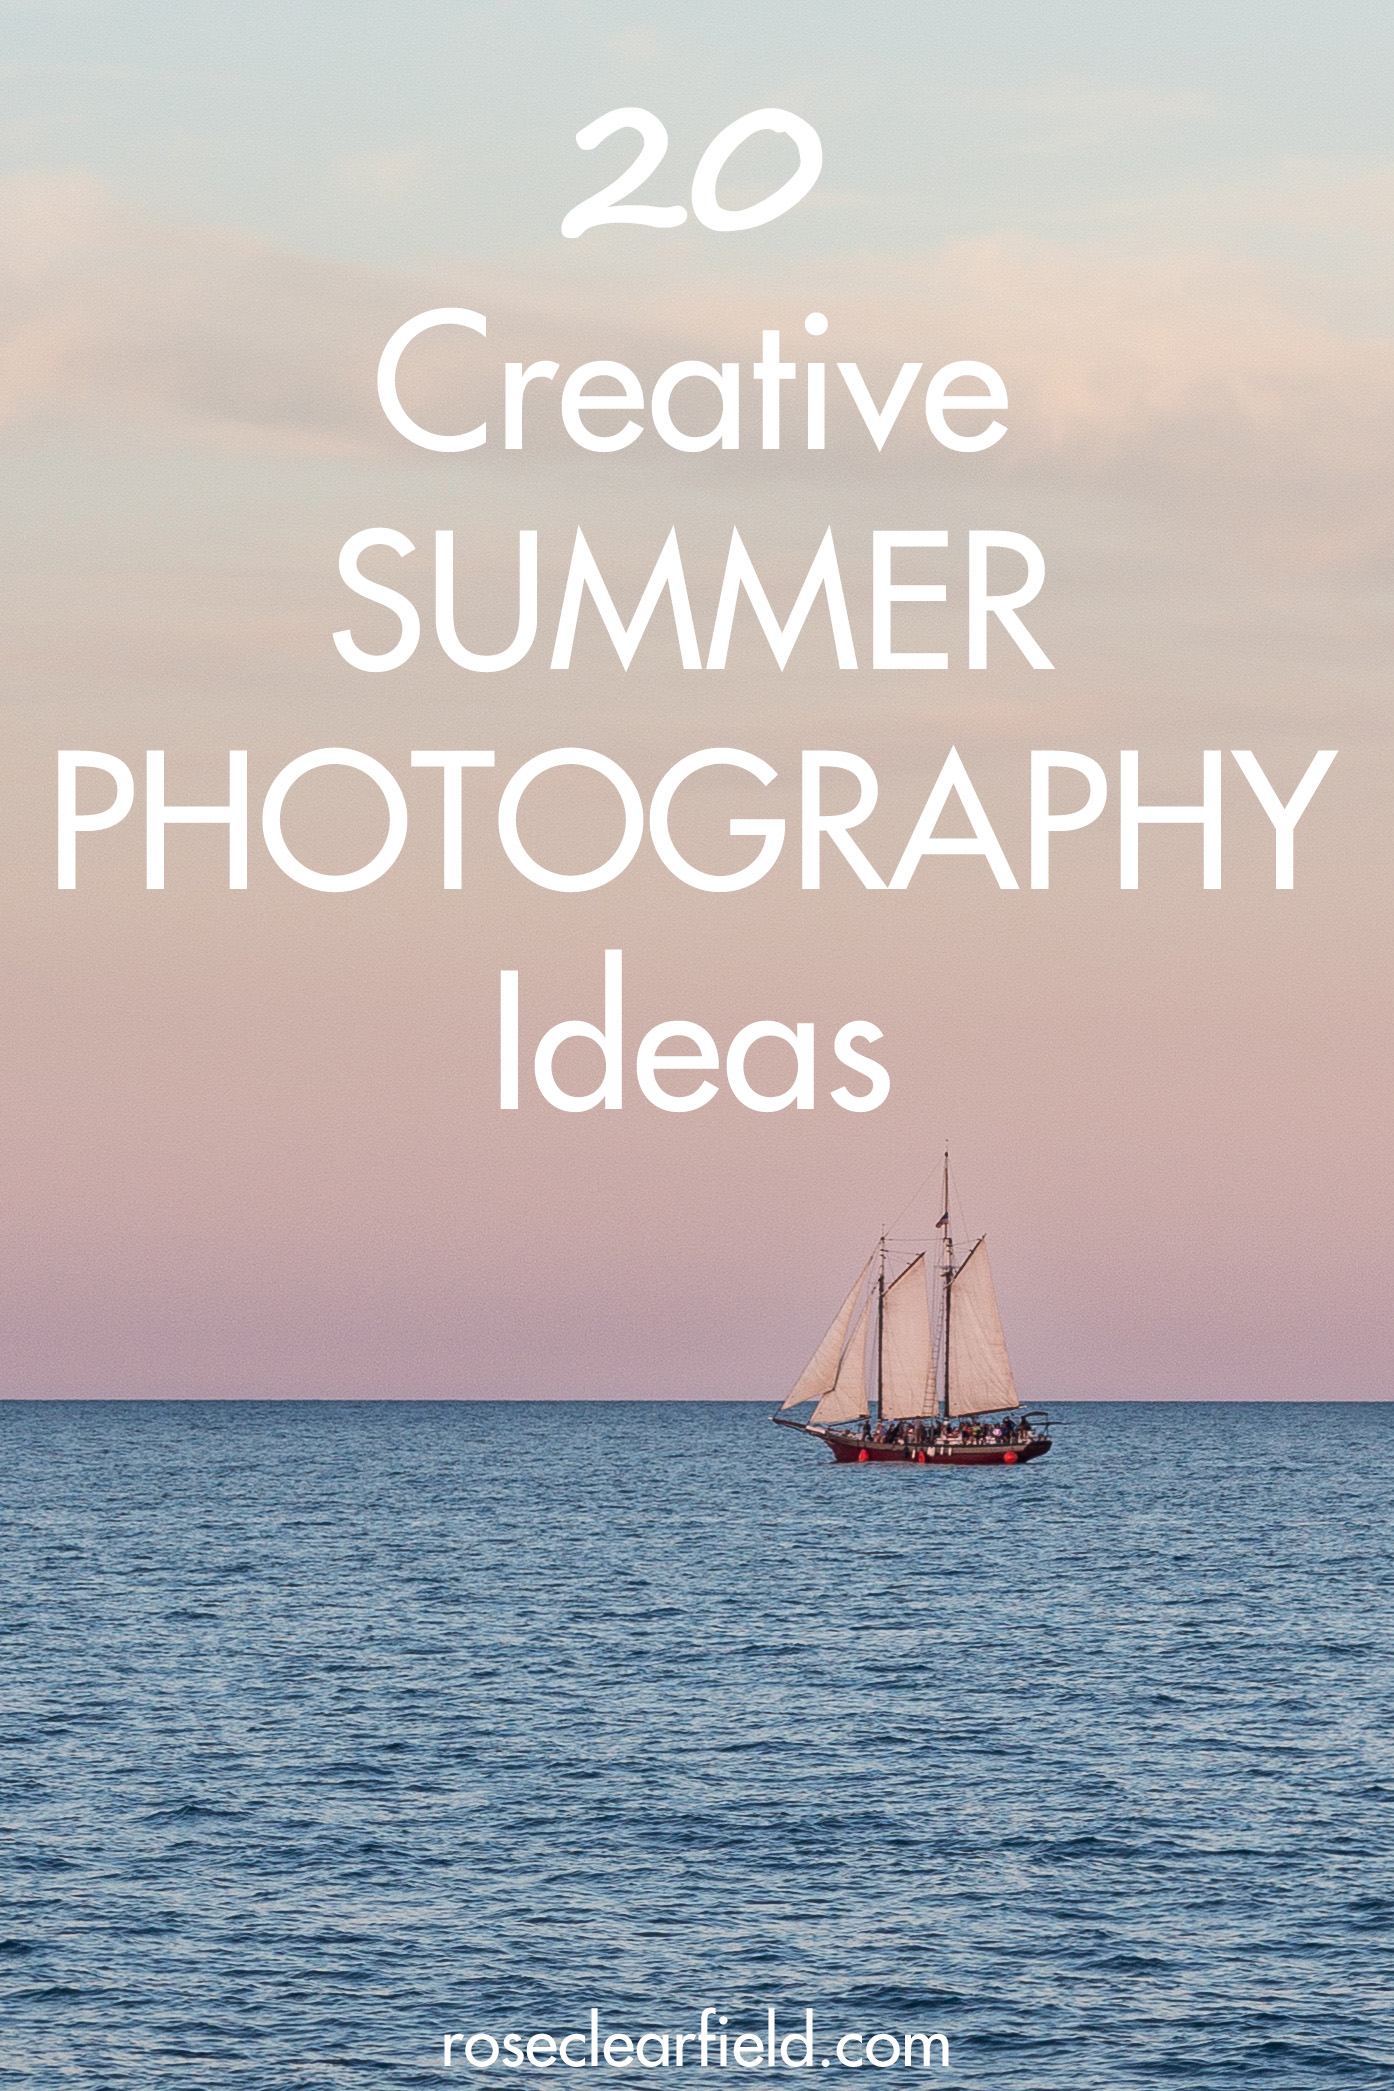 20 summer photo ideas for the beautiful summer months ahead! #summer #photoideas #summerphotolist #summerphotochallenge | https://www.roseclearfield.com